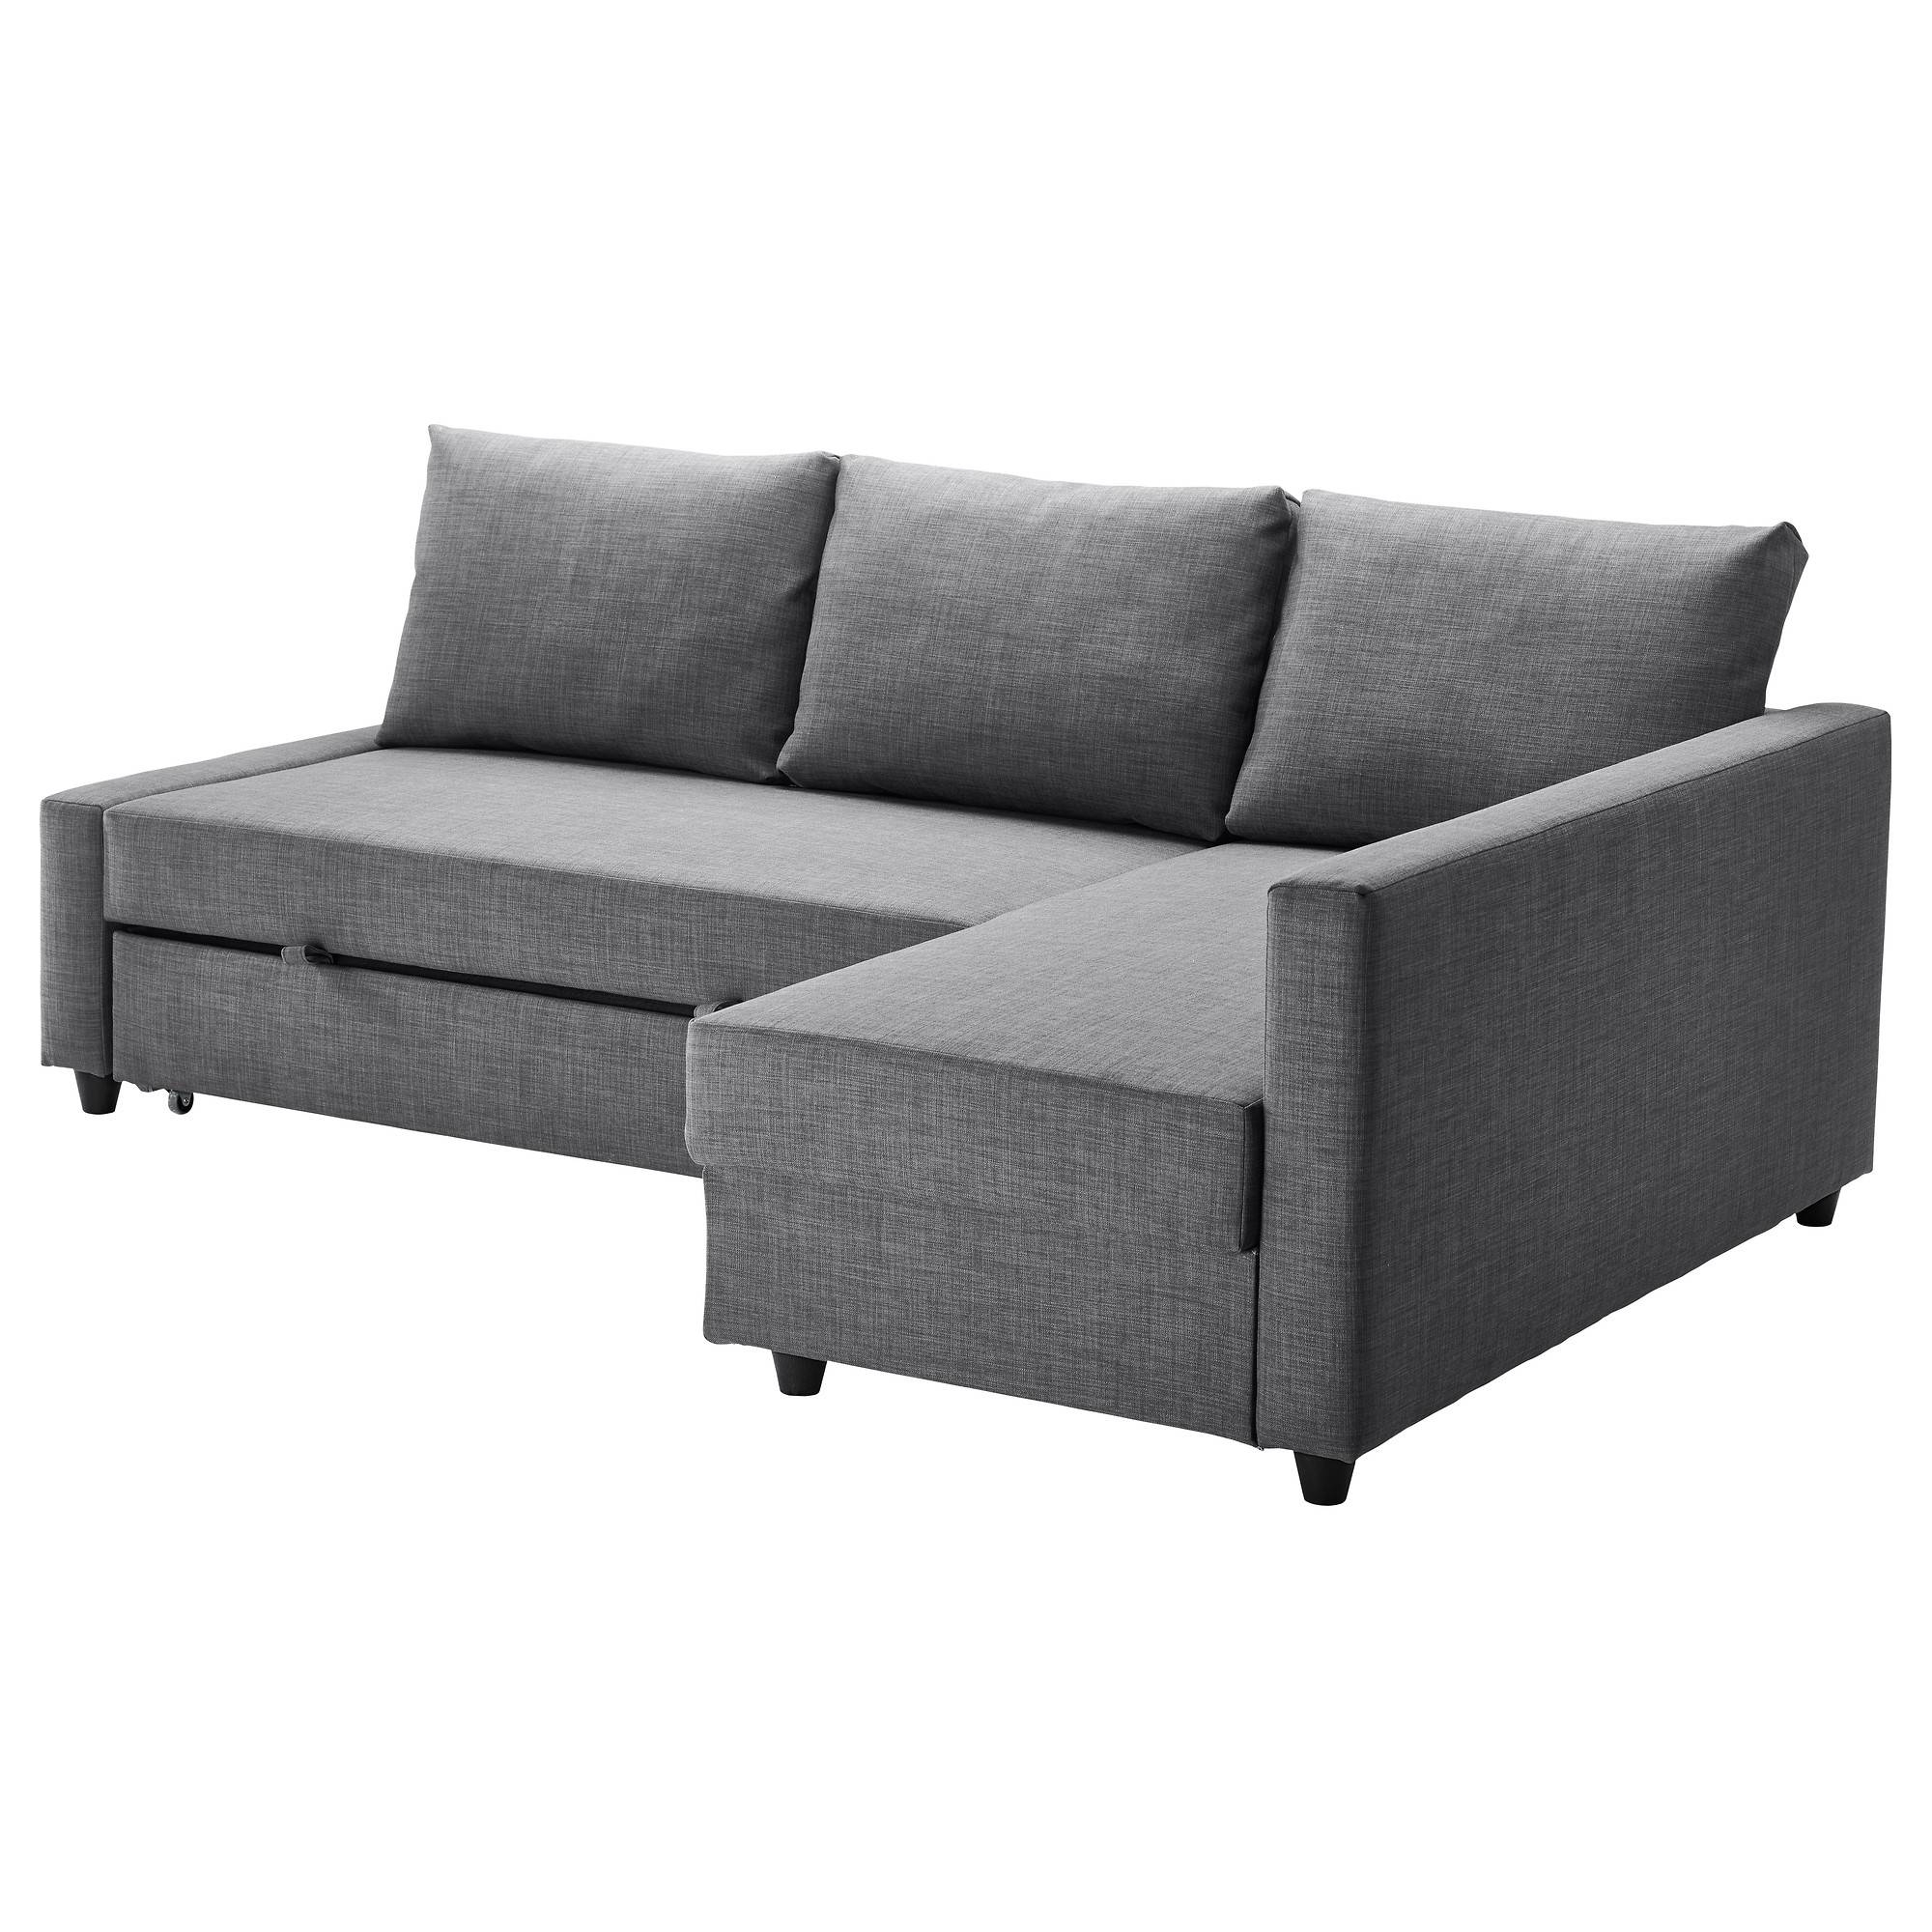 Sofa Beds & Futons – Ikea With Sectional Sofa Bed With Storage (View 19 of 25)